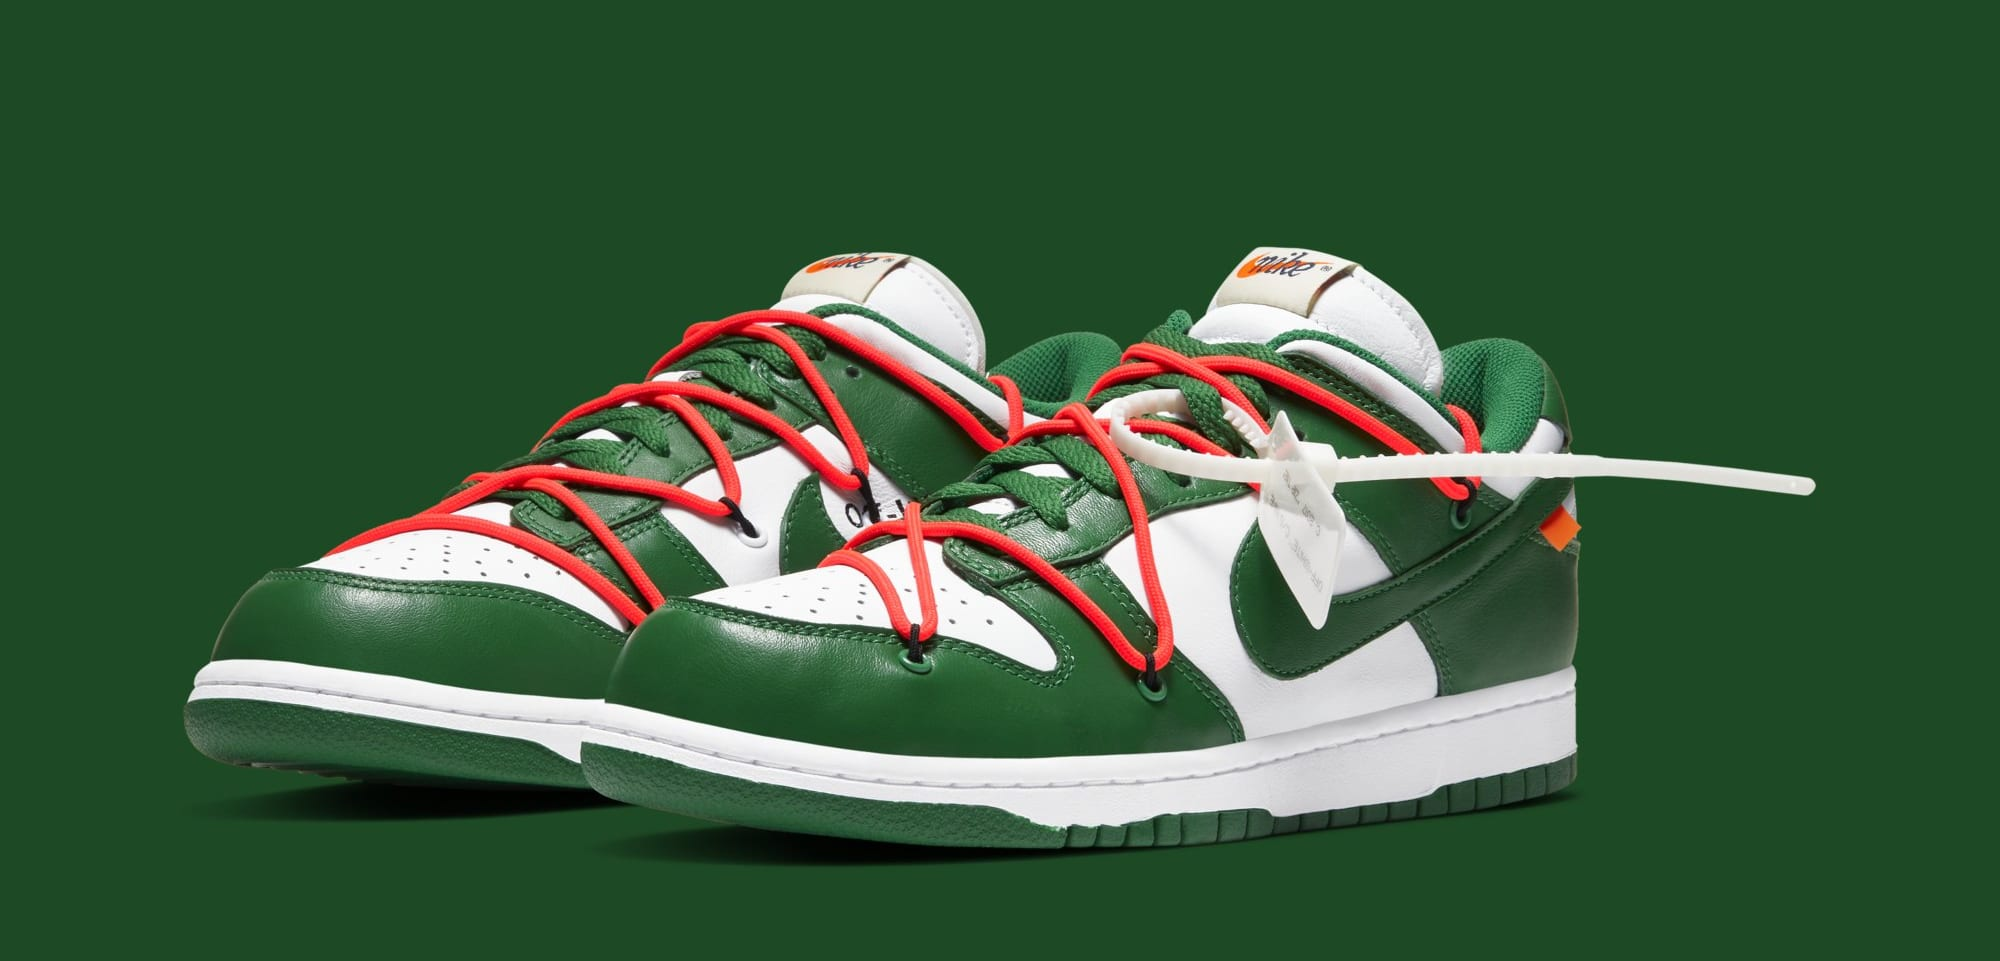 Off-White x Nike Dunk Low 'White/Pine Green' CT0856-100 (Pair)